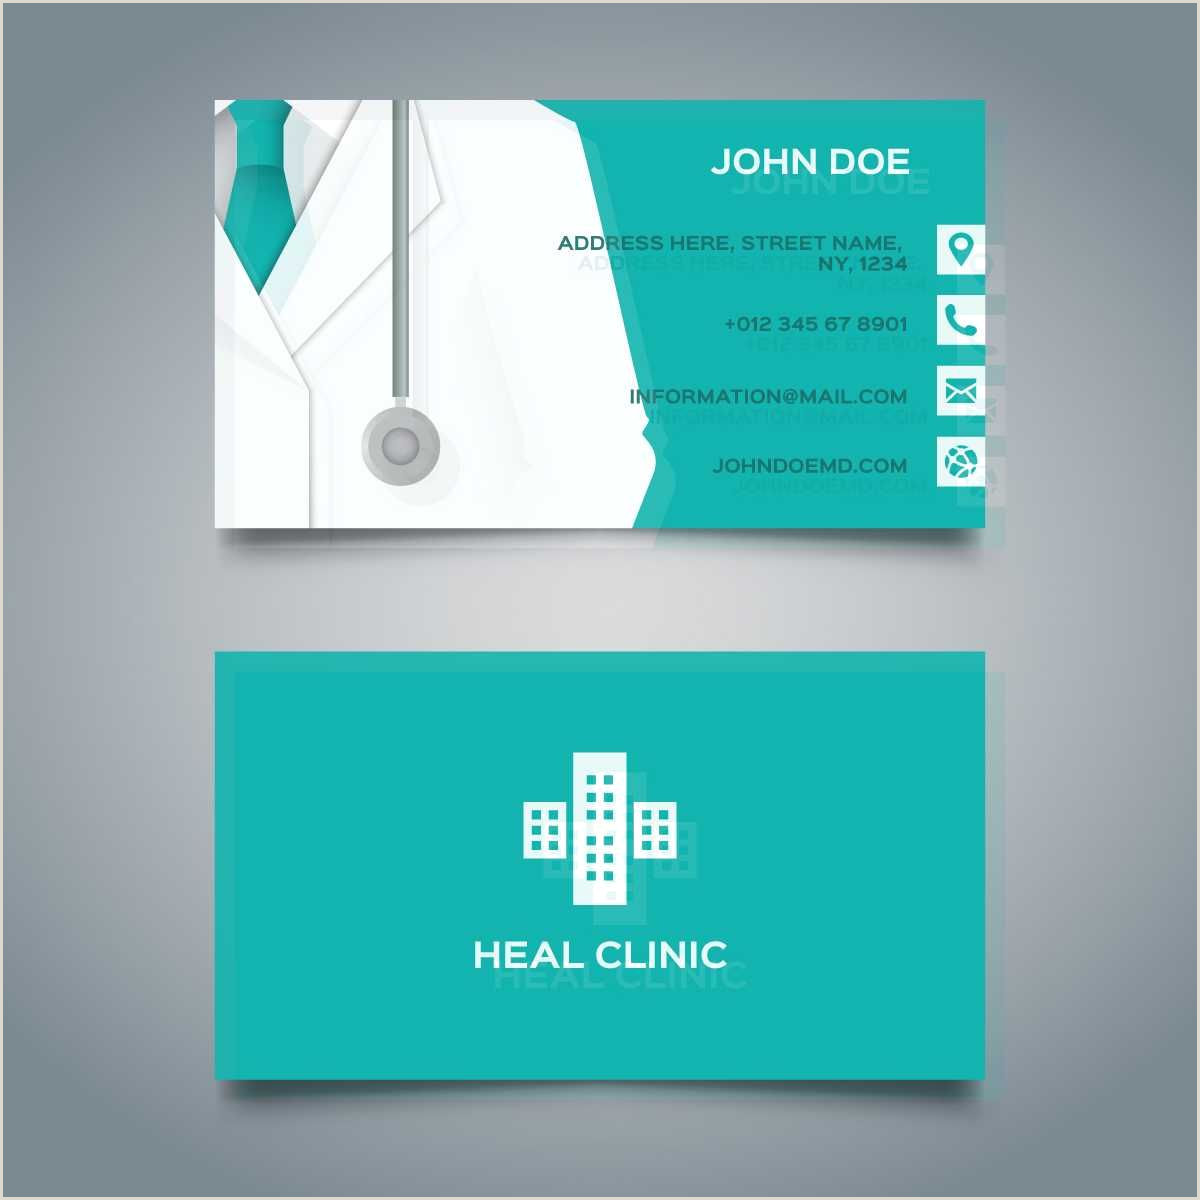 Designs For Business Cards Blue Medical Card Free